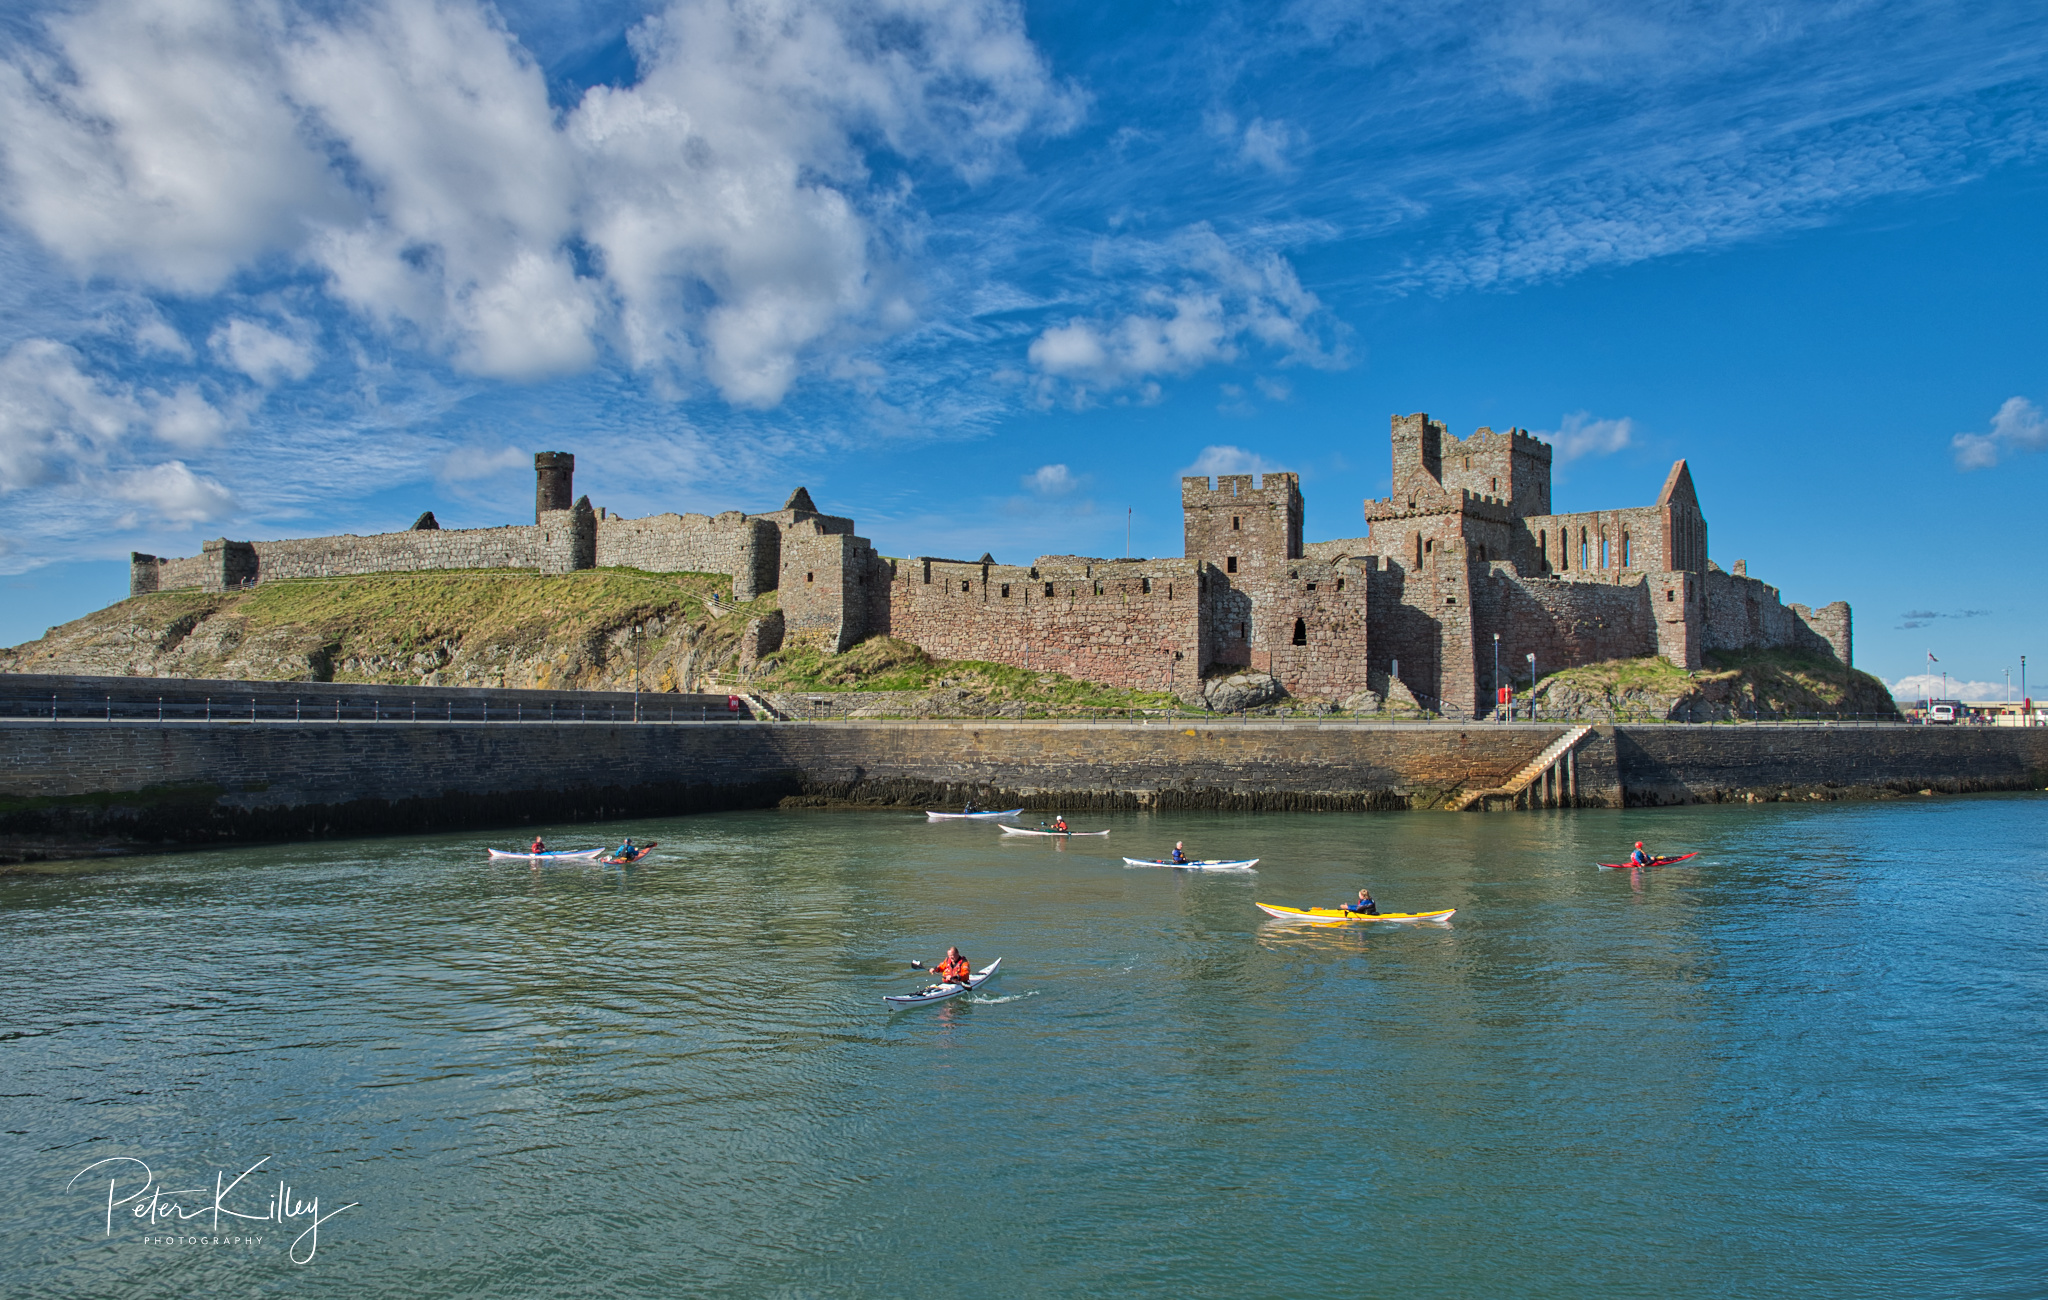 Kayakers & Peel Castle - © Peter Killey - www.manxscenes.com